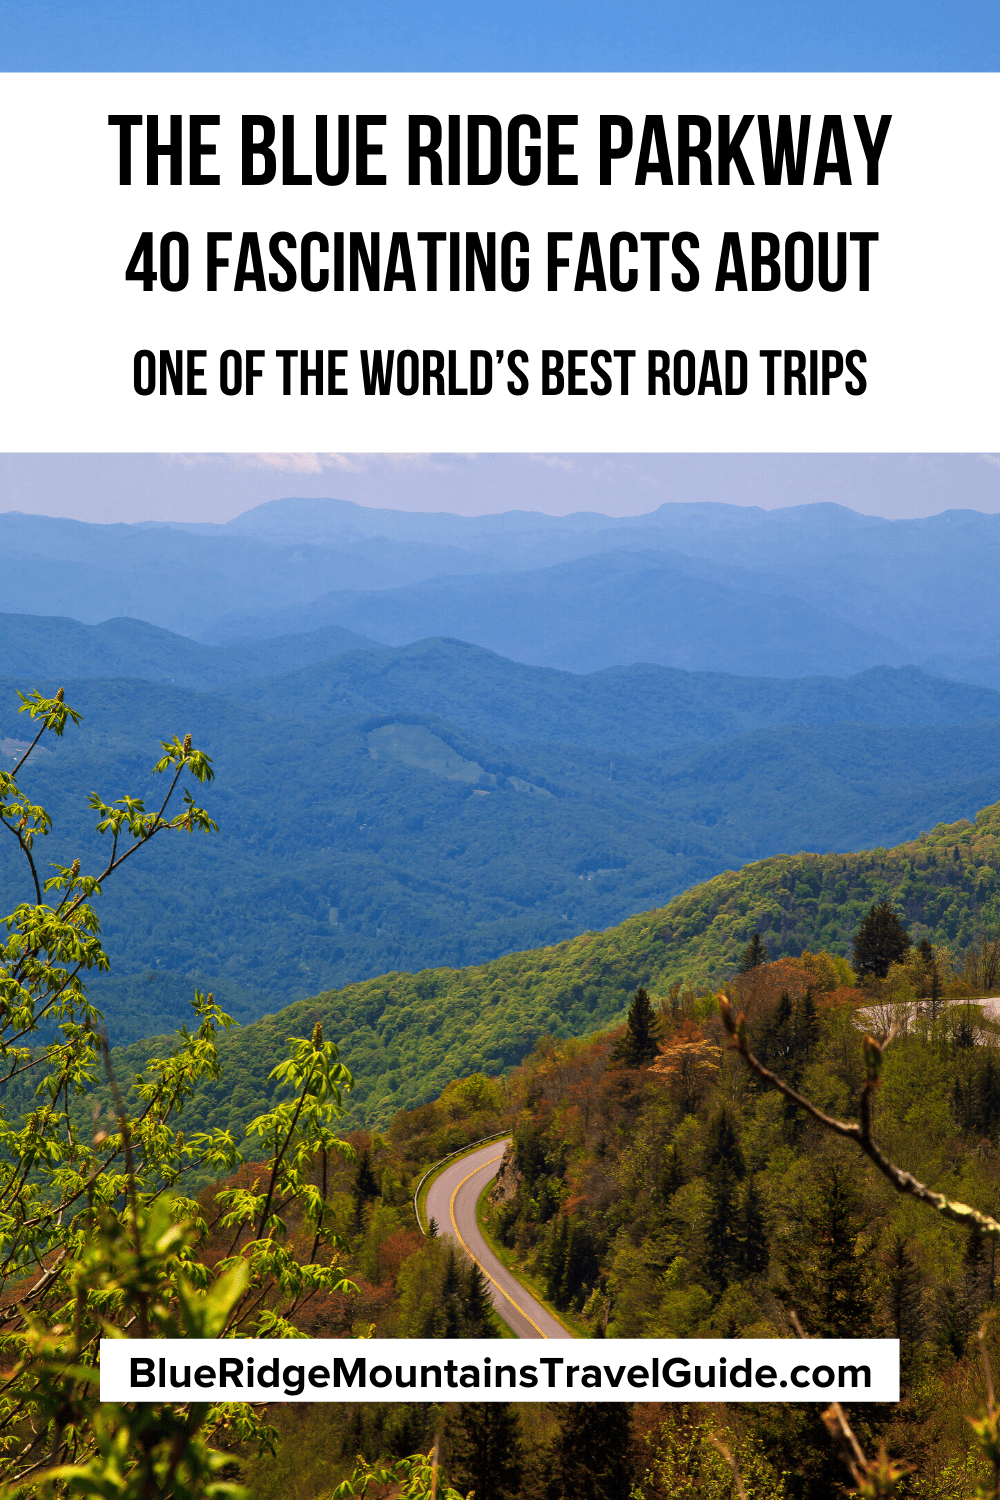 40 Fascinating Facts about the Blue Ridge Parkway including History, Scenic Overviews, Waterfalls, Attractions, Campgrounds and more! blue ridge parkway waterfalls | blue ridge parkway overlooks | waterfalls on blue ridge parkway | blue ridge parkway hotels | blue ridge parkway campgrounds | blue ridge parkway camping | how long does it take to drive the blue ridge parkway | blue ridge parkway mile markers | blue ridge parkway trails | blue ridge parkway history | blue ridge parkway length